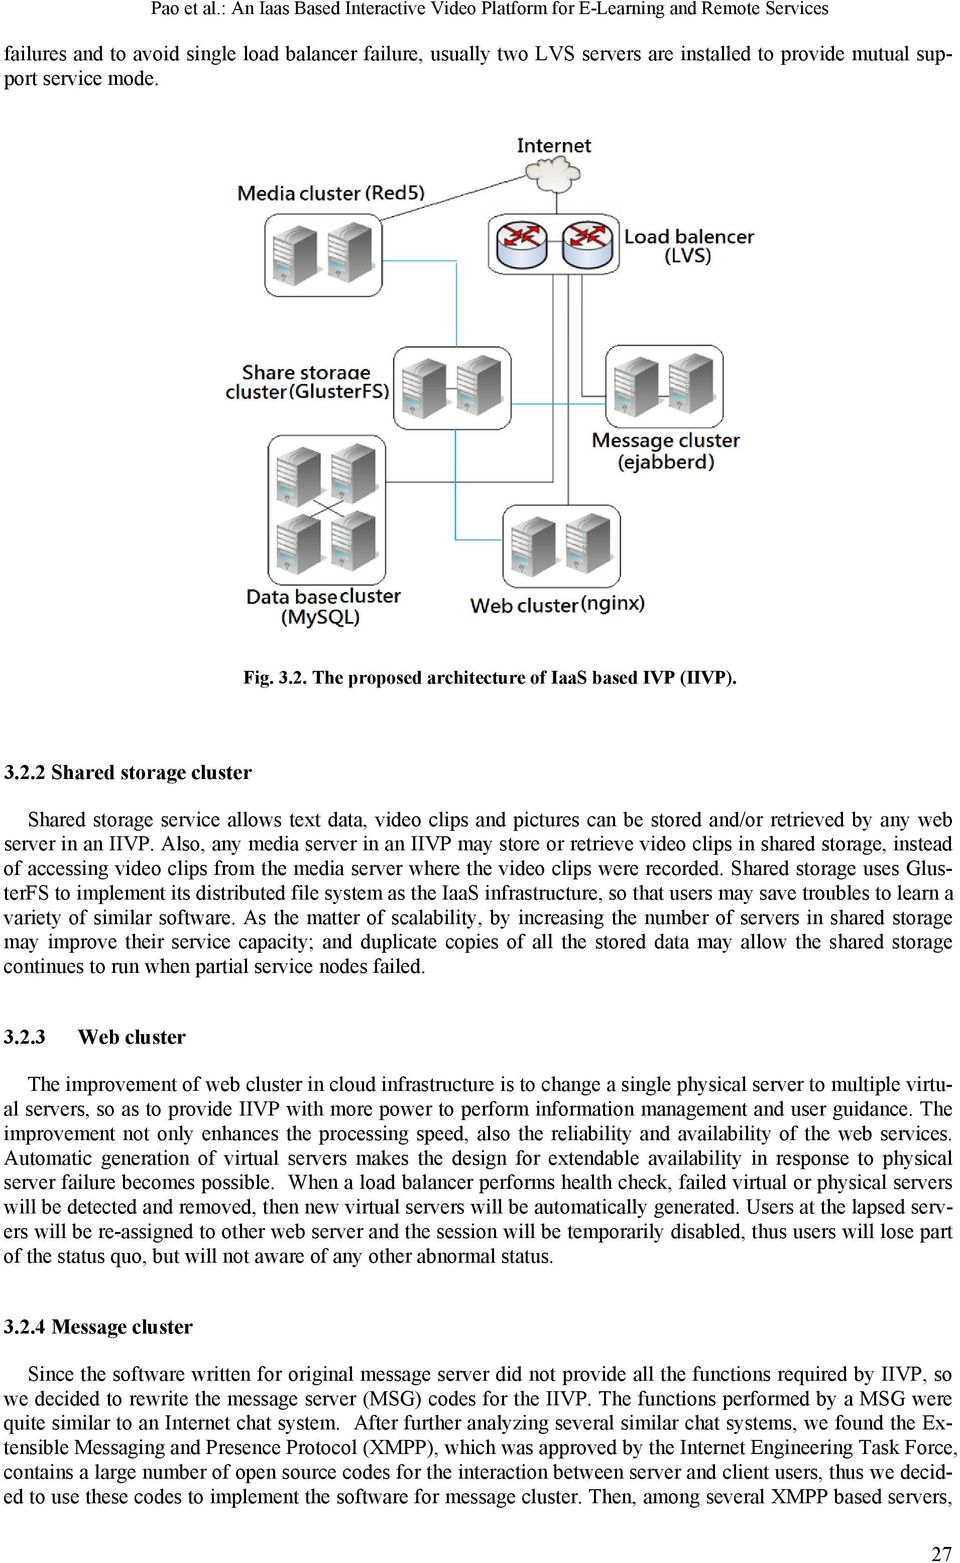 service mode. Fig. 3.2. The proposed architecture of IaaS based IVP (IIVP). 3.2.2 Shared storage cluster Shared storage service allows text data, video clips and pictures can be stored and/or retrieved by any web server in an IIVP.